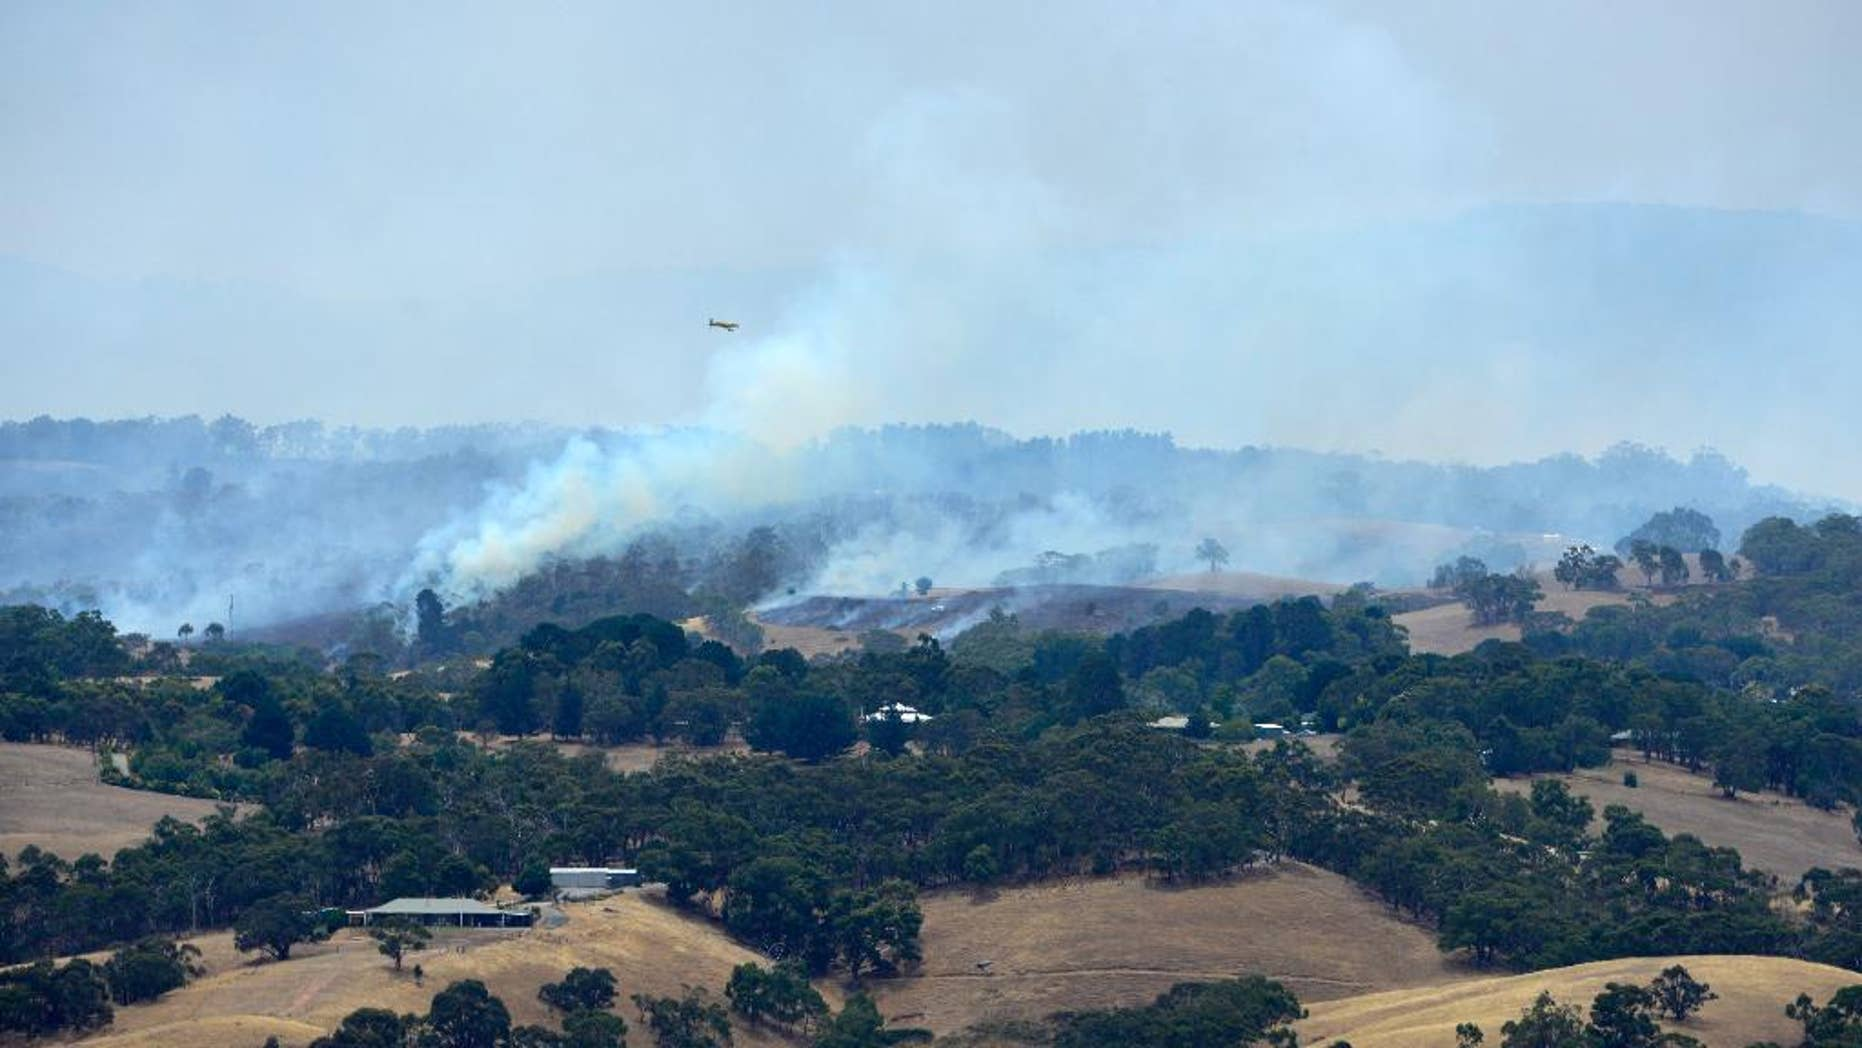 A plane flies over smoke from fires burring across the Adelaide Hills, near Adelaide, Australia, Saturday, Jan. 3, 2015.  Thousands of Australians fled their homes as wildfires raged across the nation's south on Saturday, with firefighters struggling to contain the blazes as strong winds fanned the flames. (AAP IMAGE/ DAVID MARIUZ) EDITORIAL USE ONLY, AUSTRALIA OUT, NEW ZEALAND OUT, PAPUA NEW GUINEA OUT, SOUTH PACIFIC OUT, NO ARCHIVES